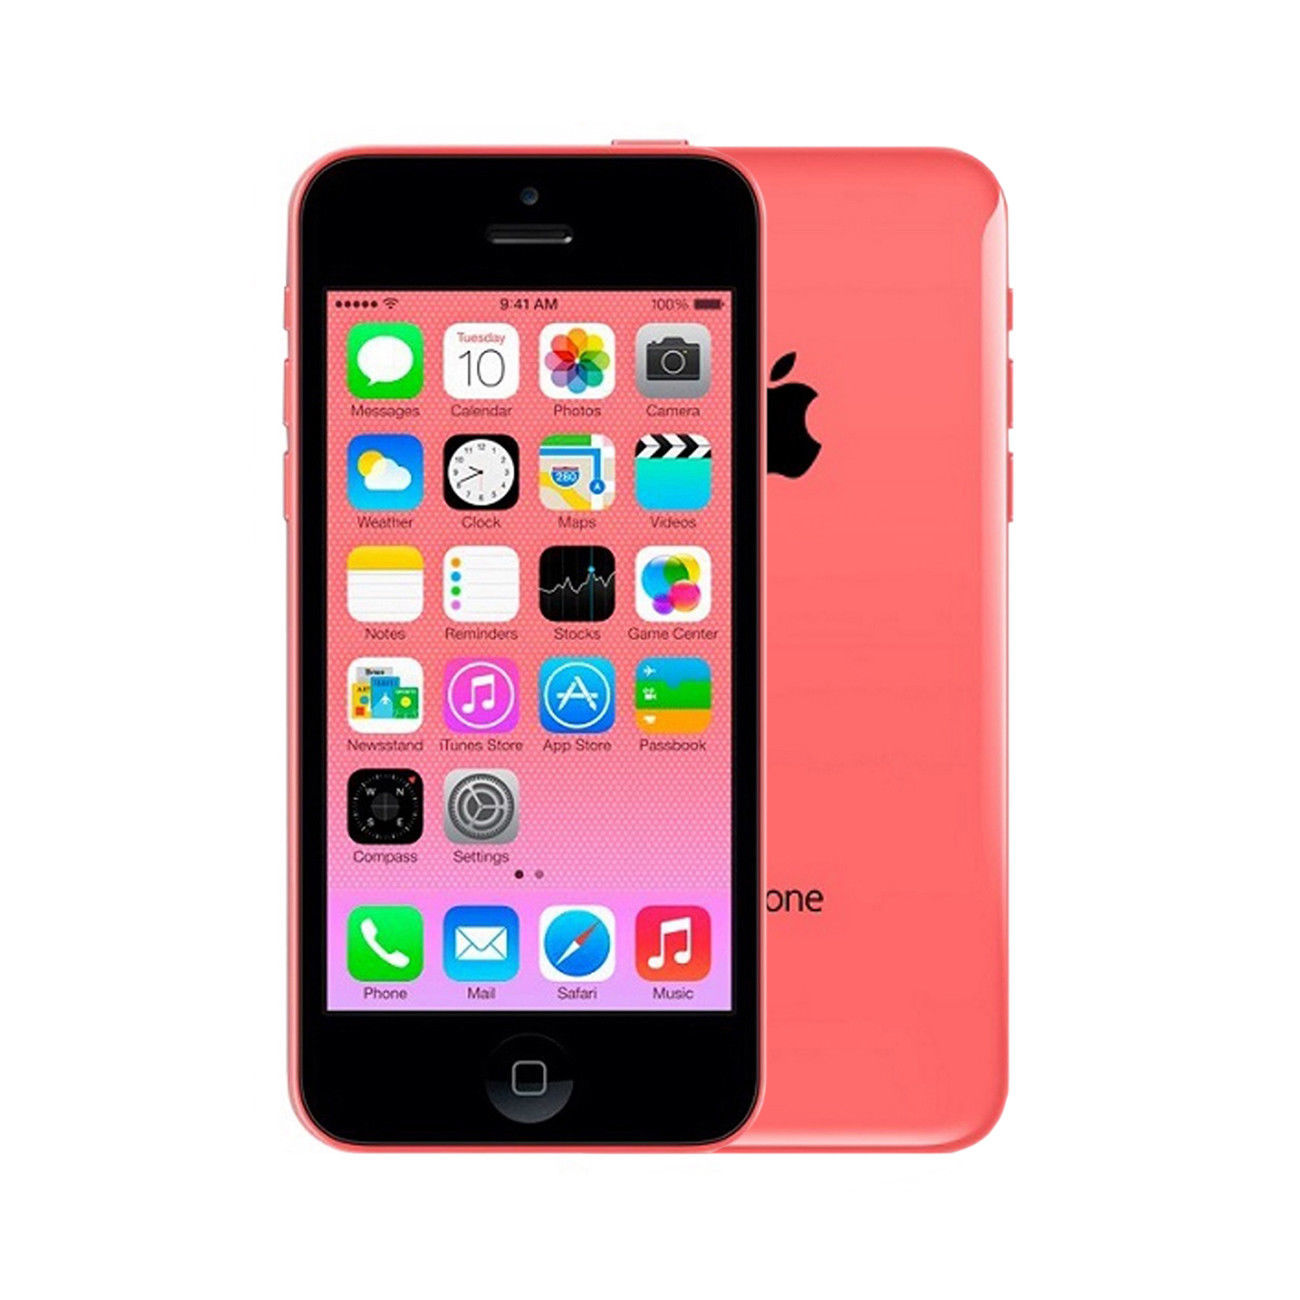 Apple iPhone 5c [8GB] [Pink] [Imperfect]